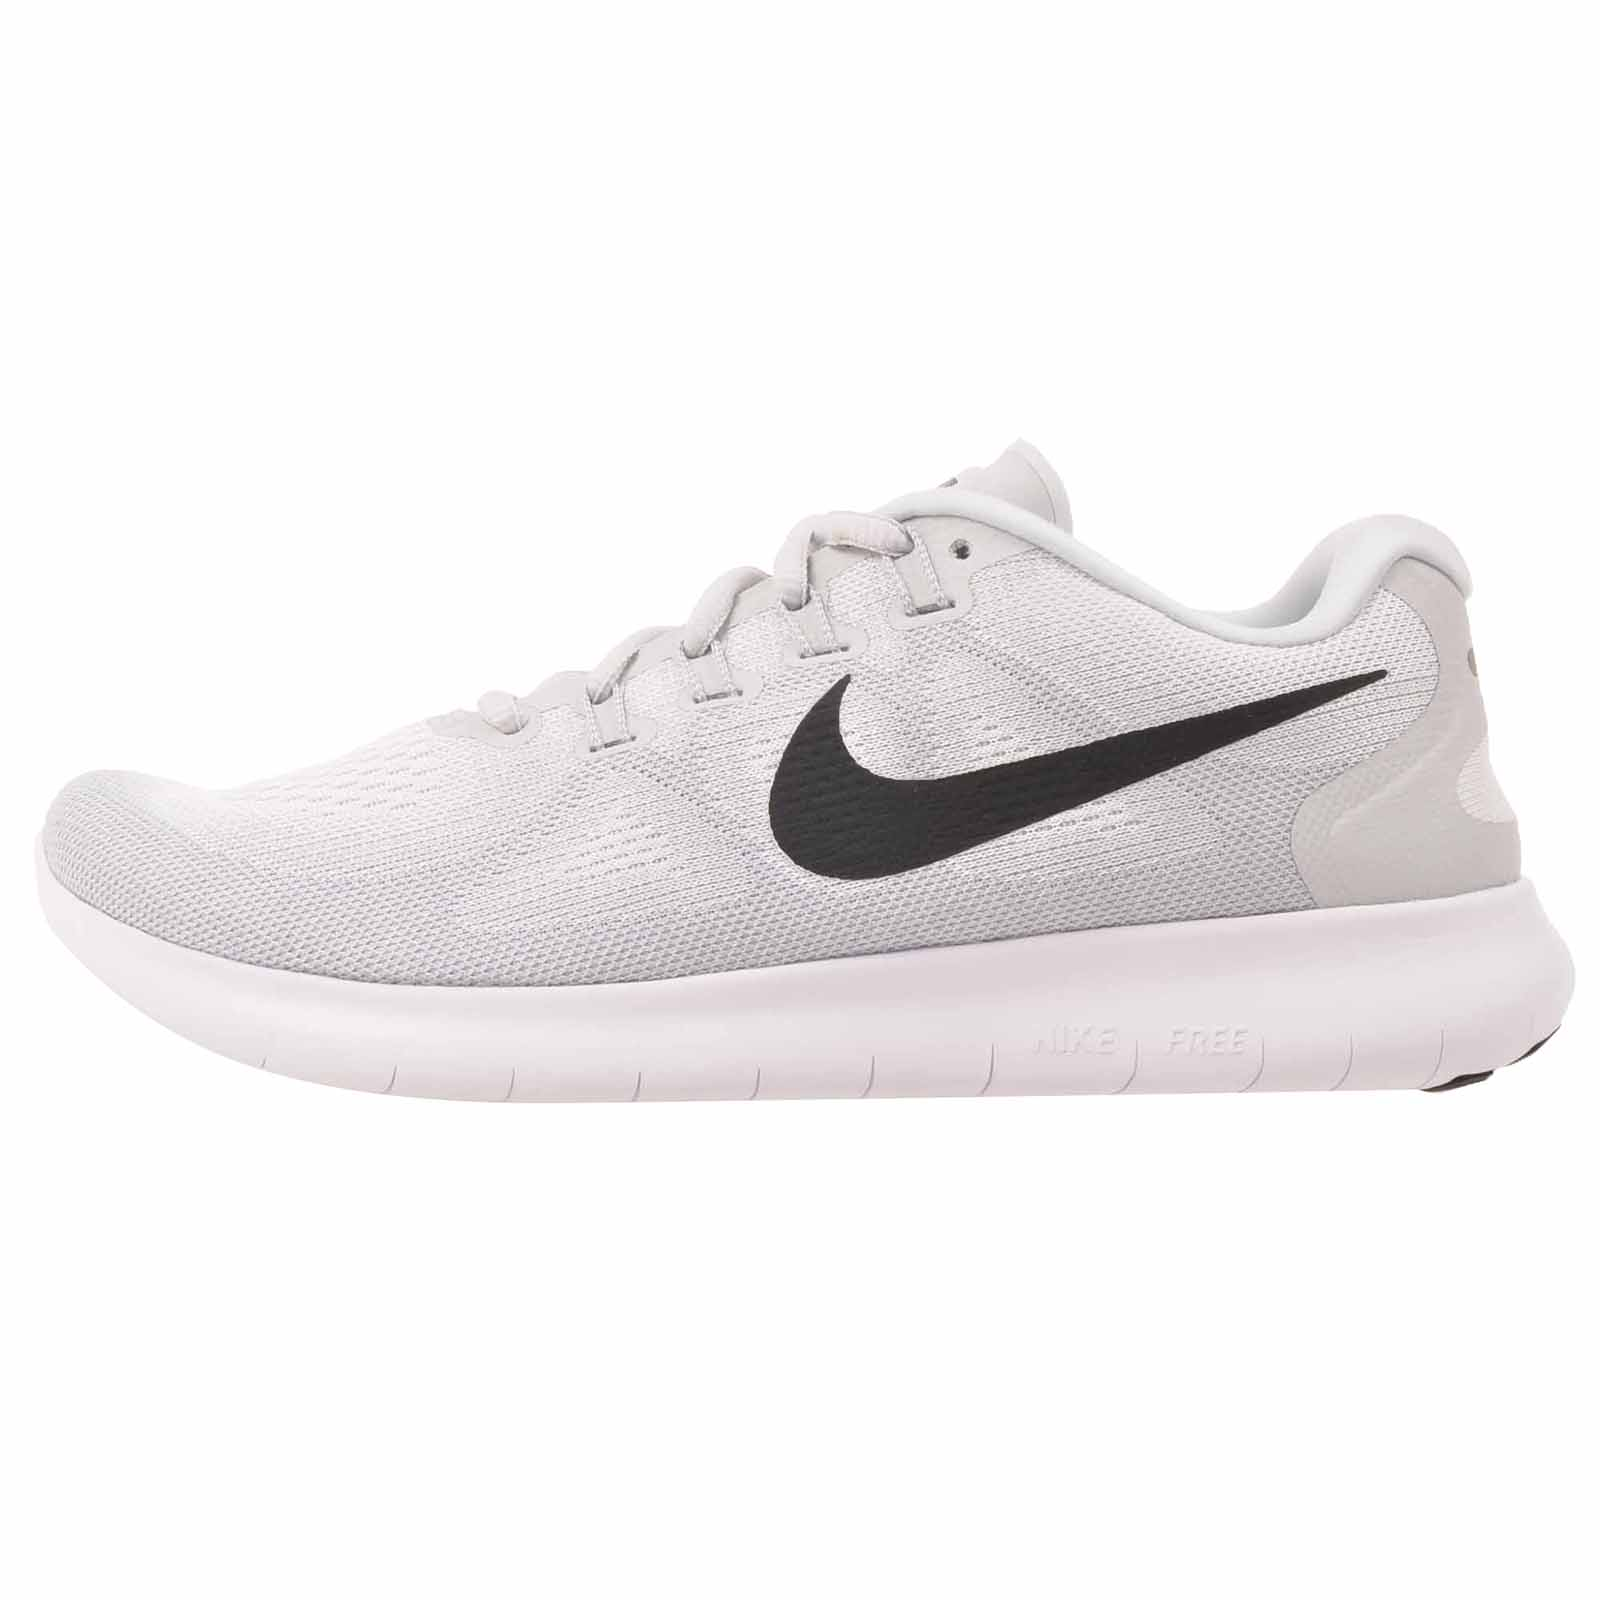 Details about Nike Free RN 2017 Running Mens Shoes White Pure Platinum 880839 101